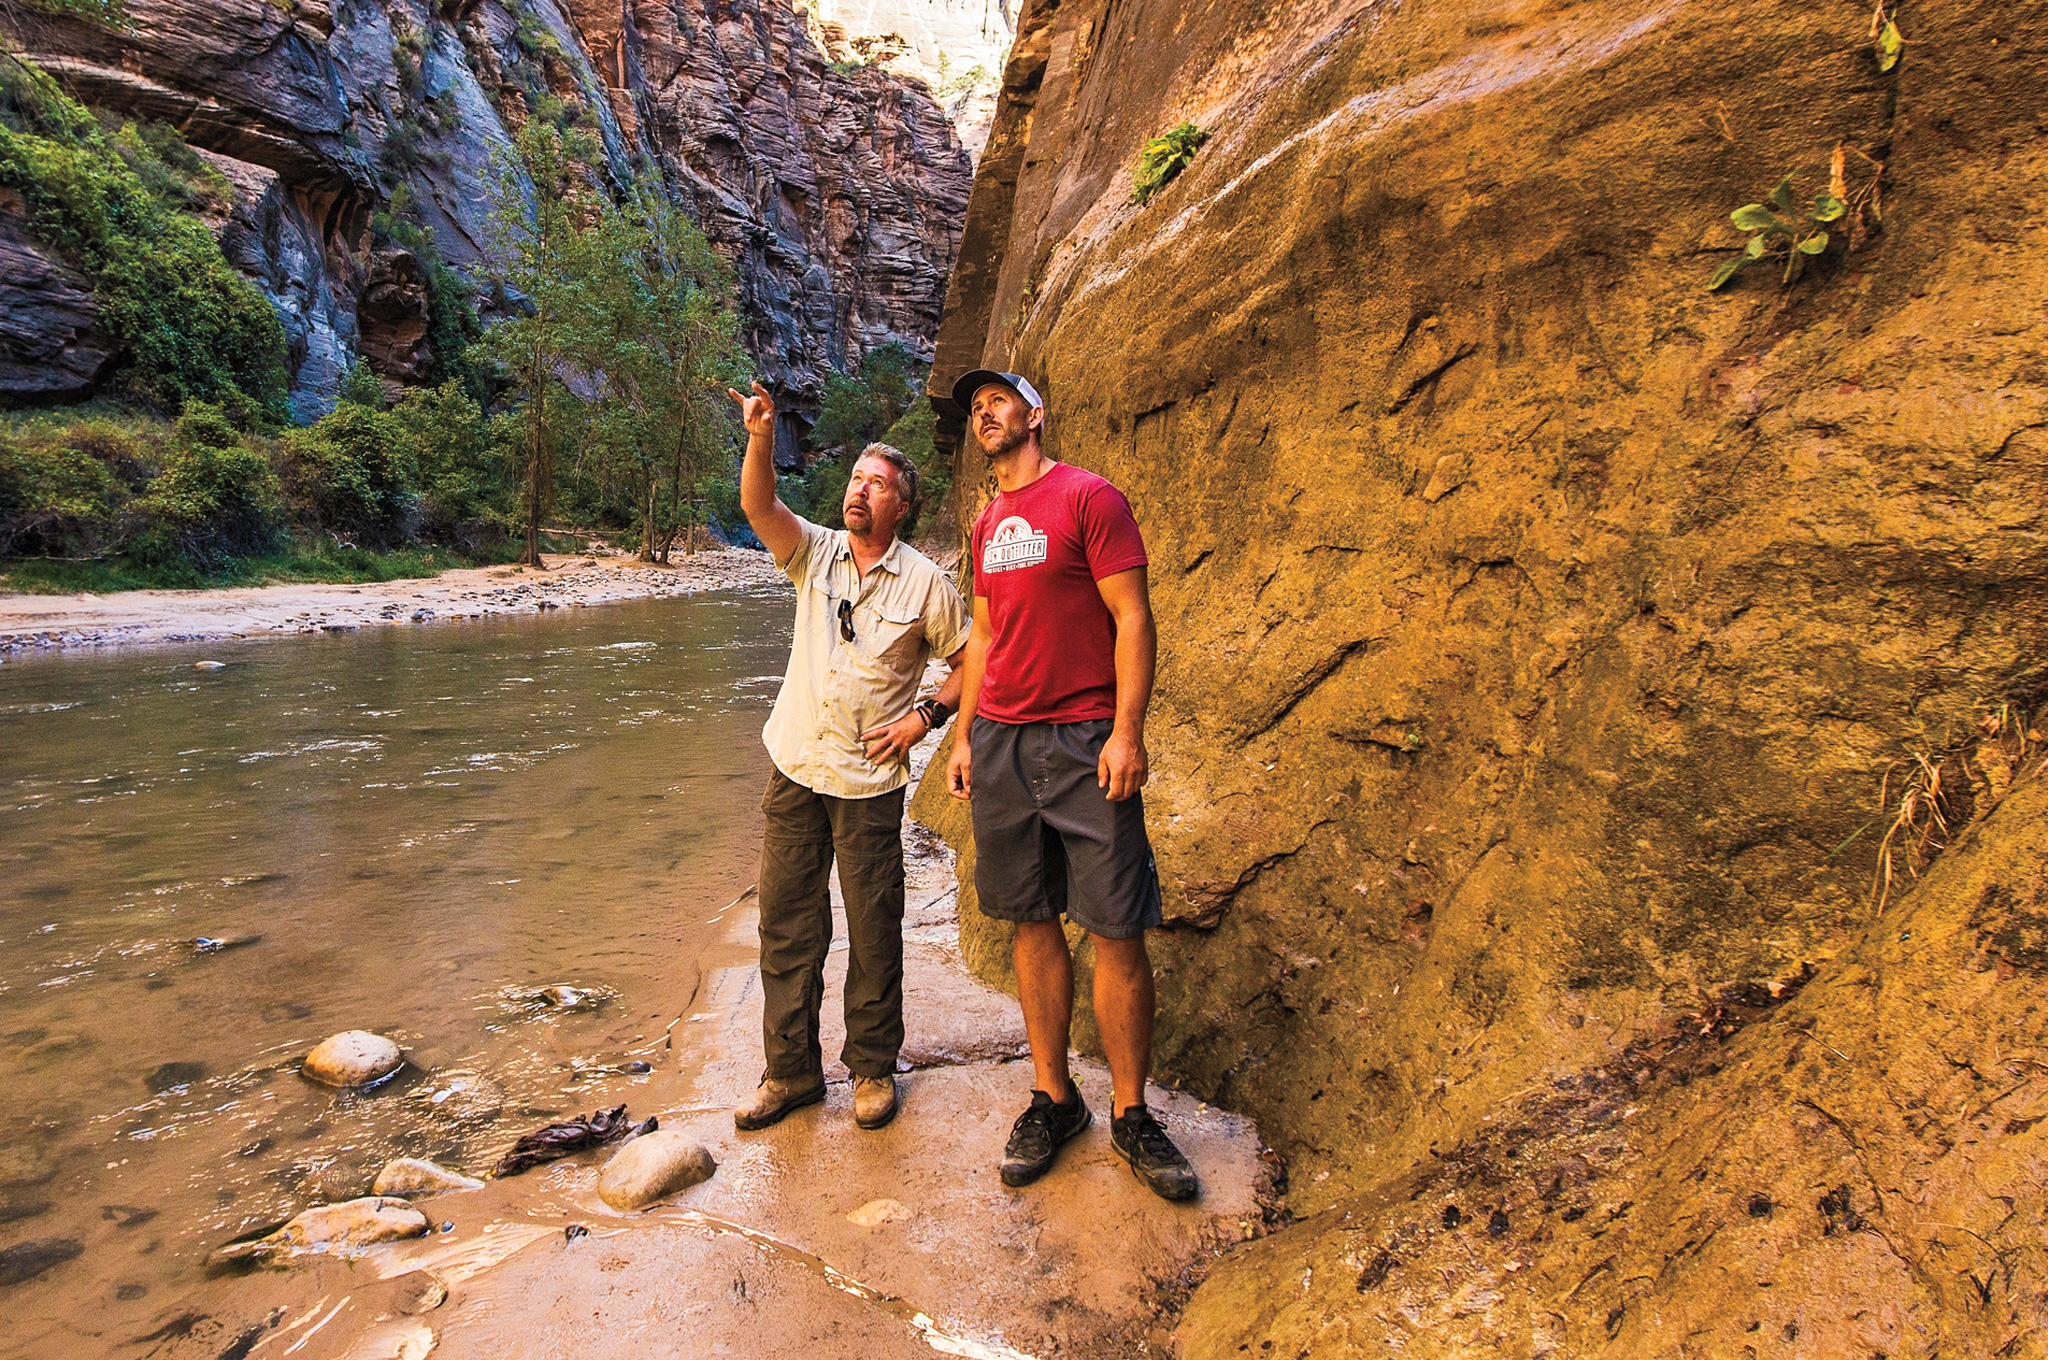 St. Antoine and guide Jim Frandsen scrutinize the jagged walls of Zion Narrows.